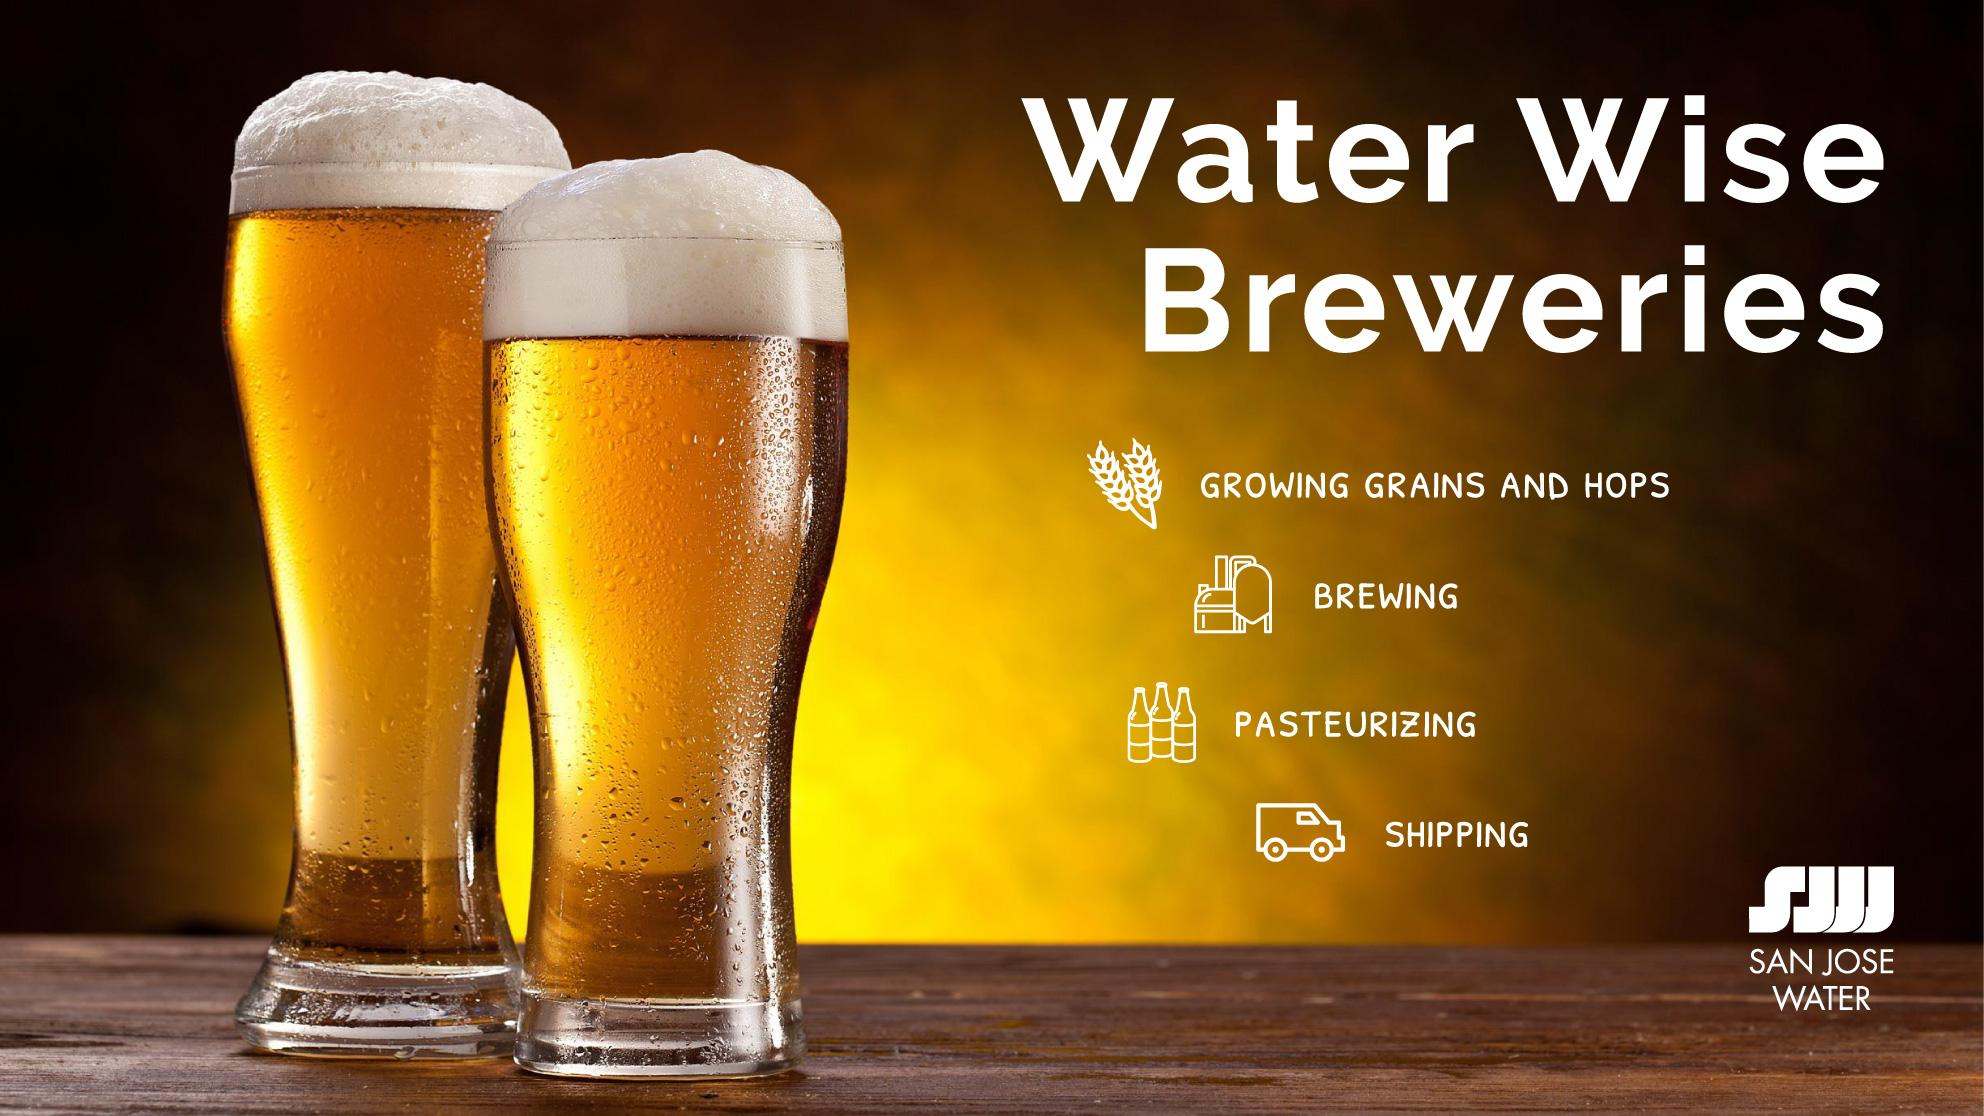 Water Wise Breweries in CA